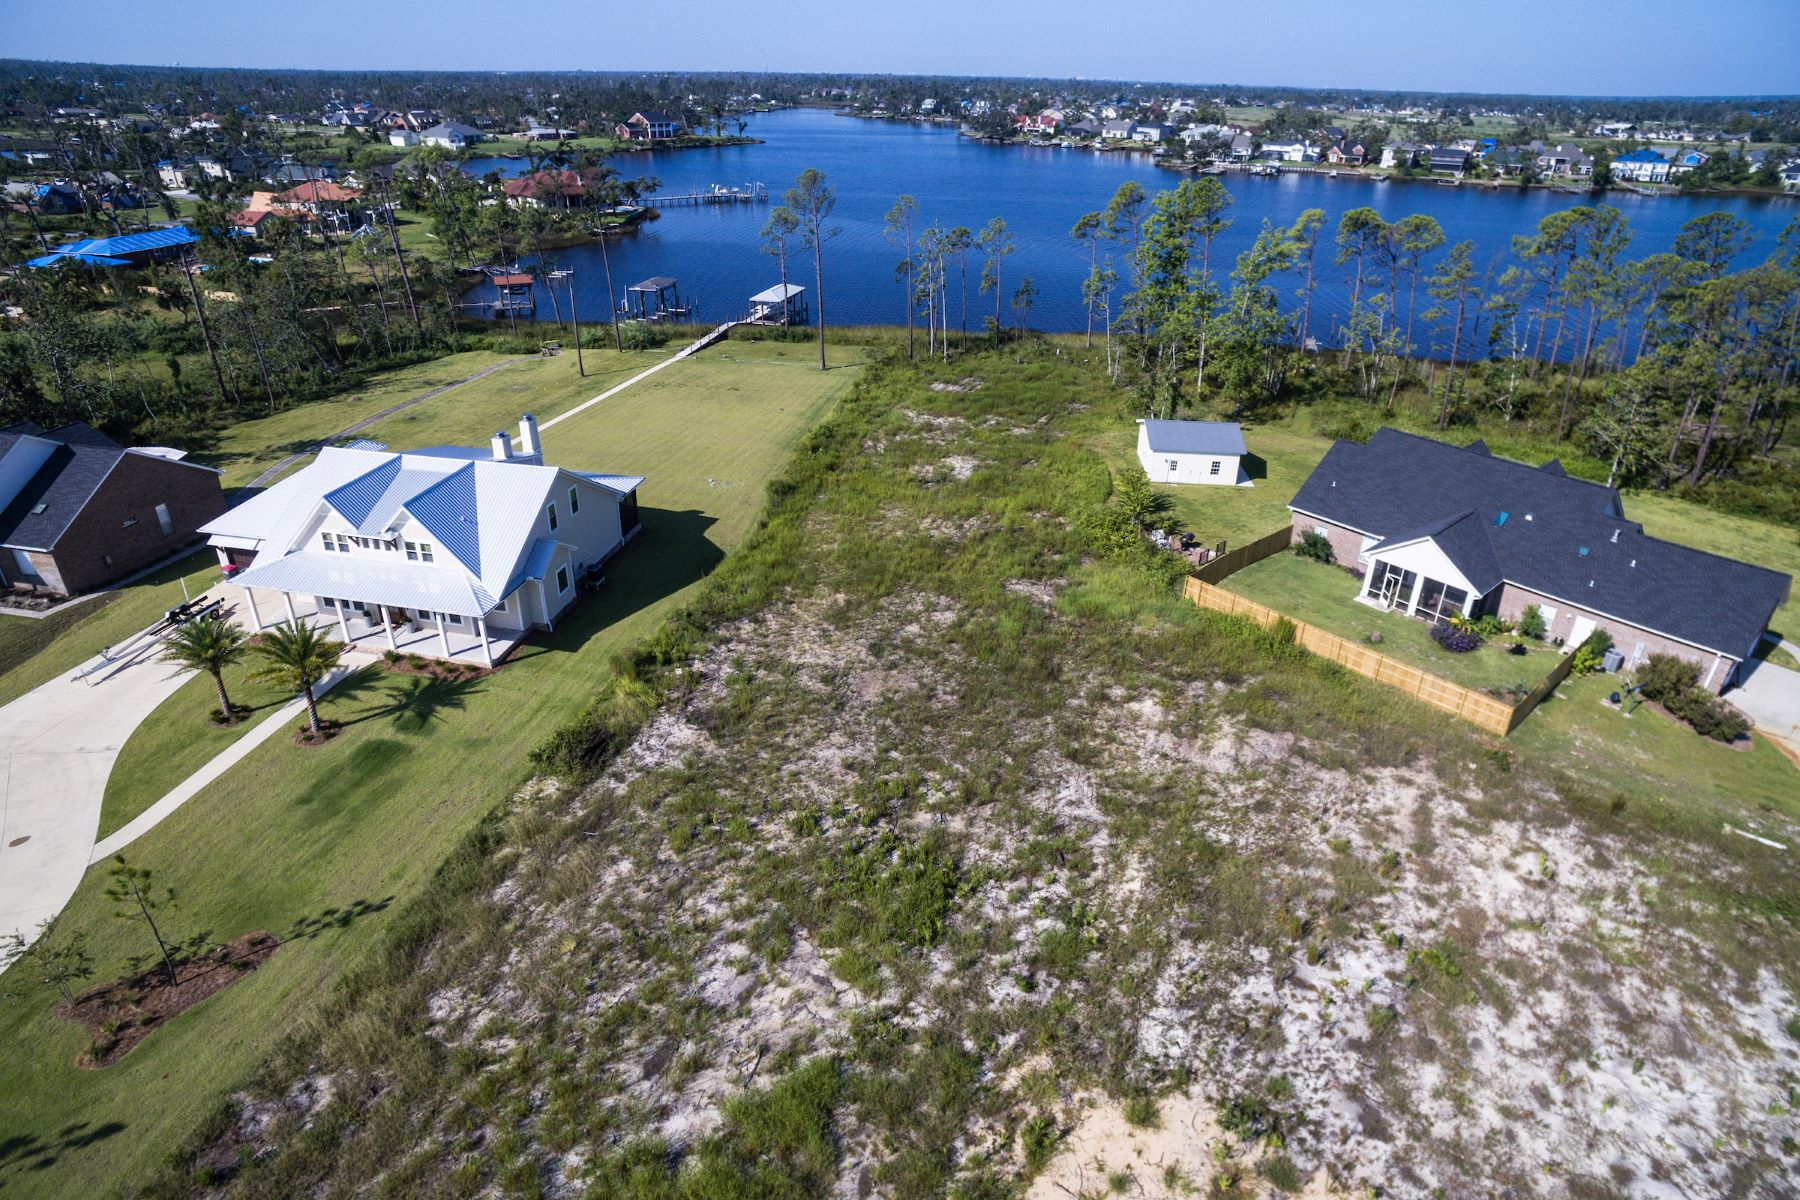 Land for Sale at Large Waterfront Lot On Bayou With Access To Gulf 502 Radcliff Avenue, Lynn Haven, Florida 32444 United States